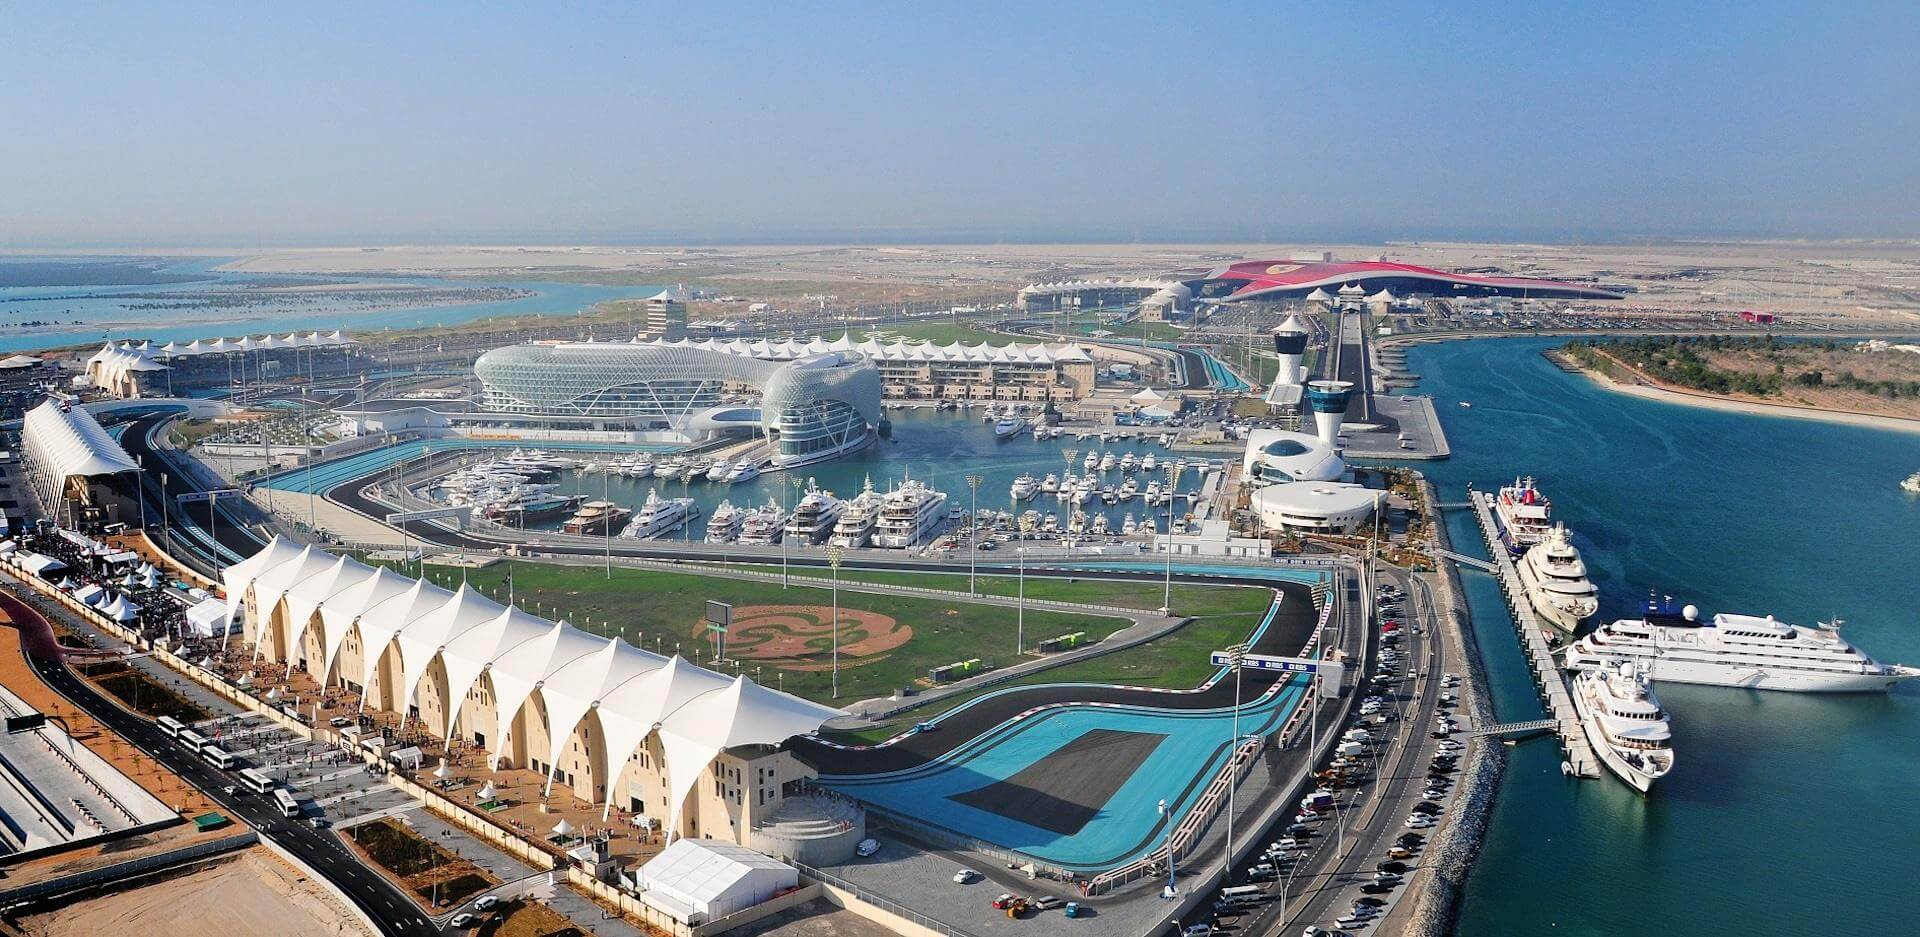 Airlines E-Ticket to Abu Dhabi